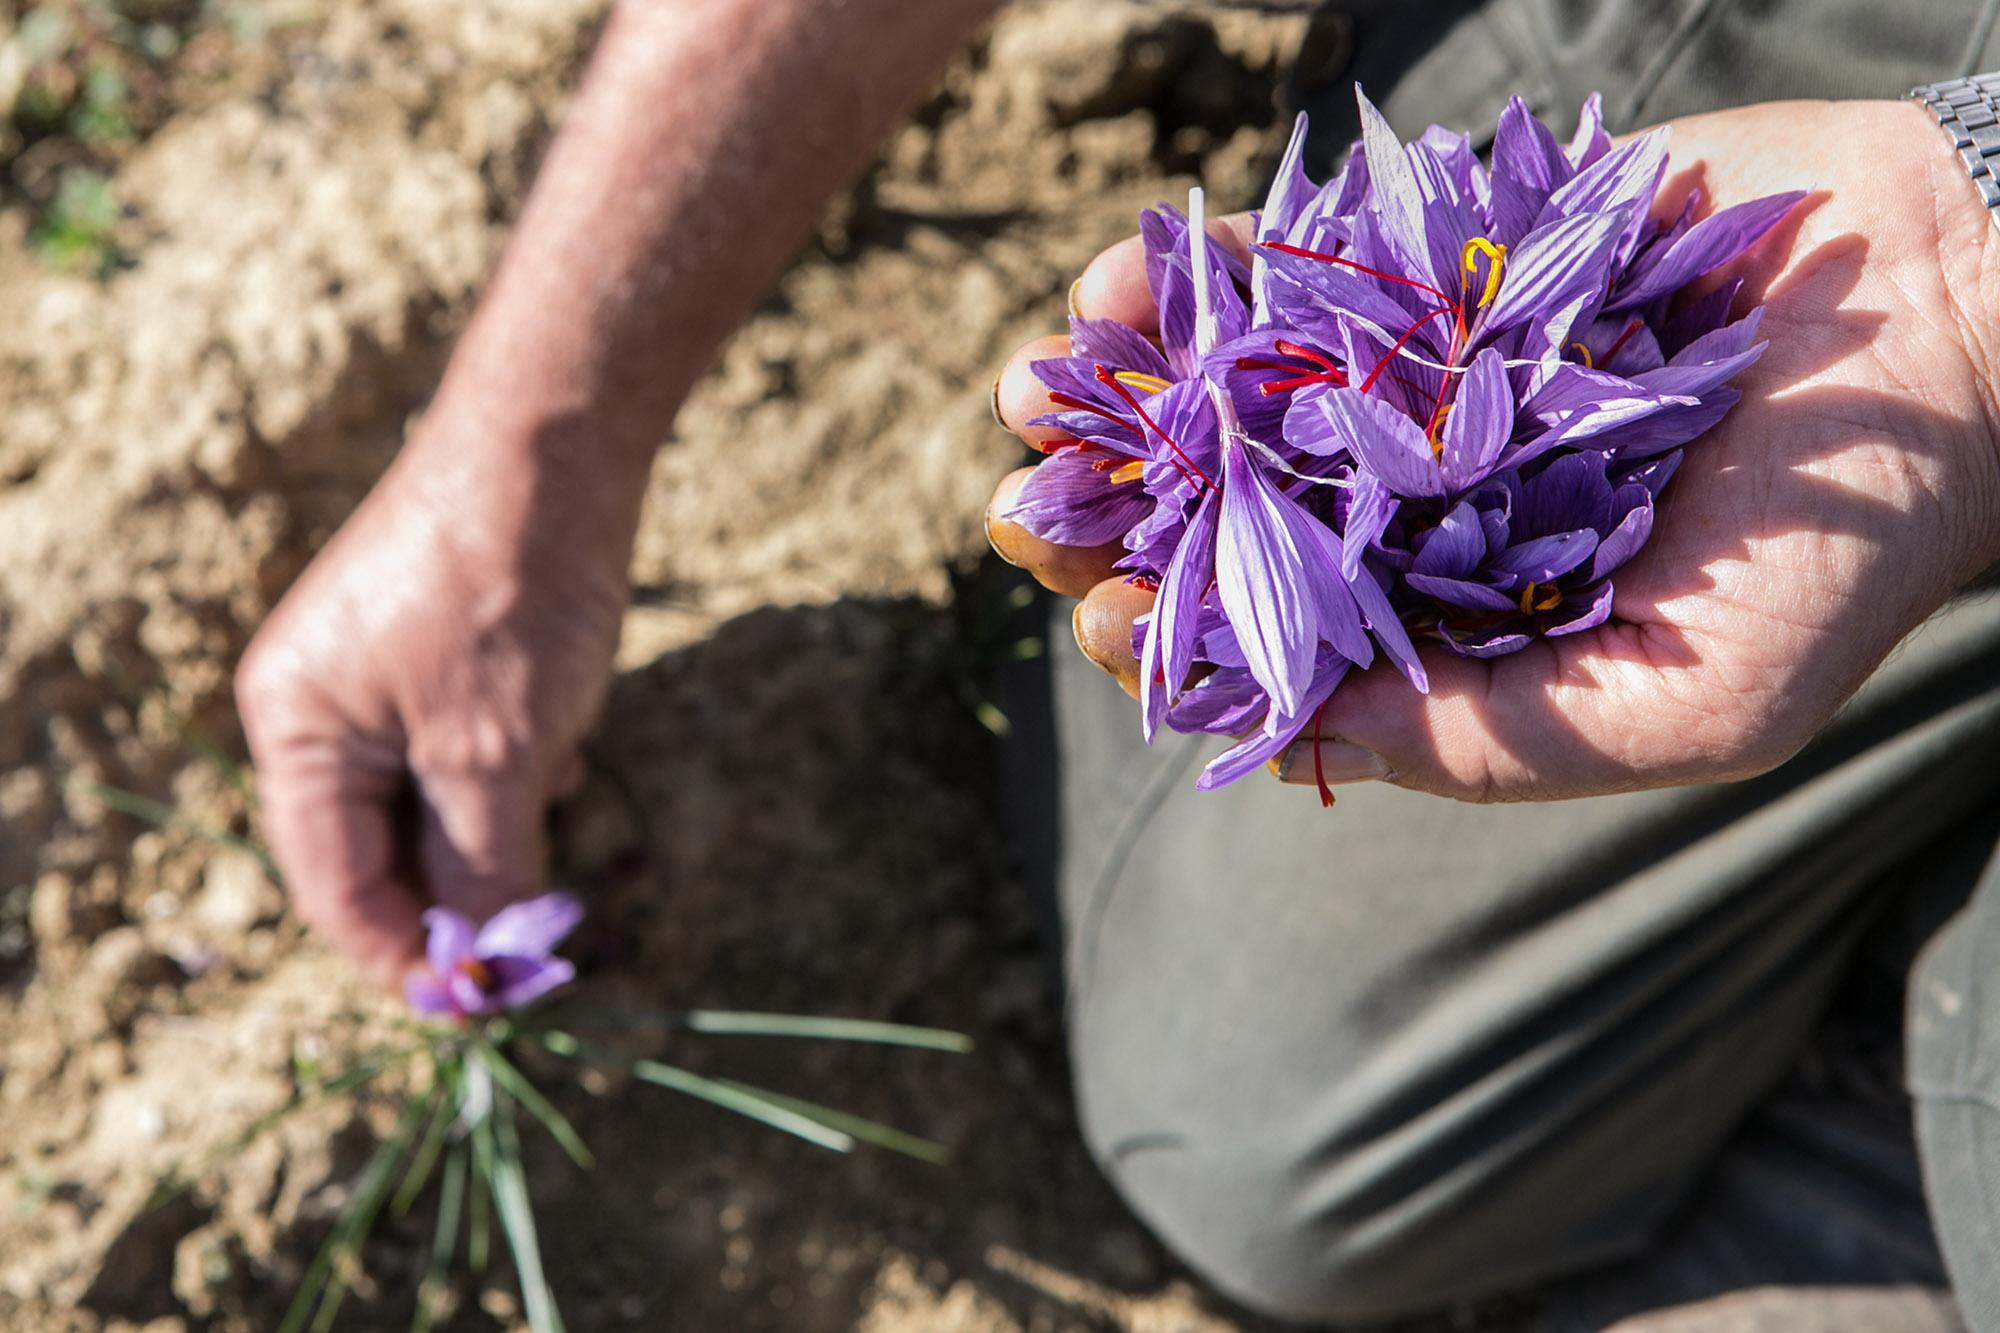 Every year at the end of October we take the saffron flowers just by hand and just early in the morning. Year by year the same ritual. - © Francesca Pagliai